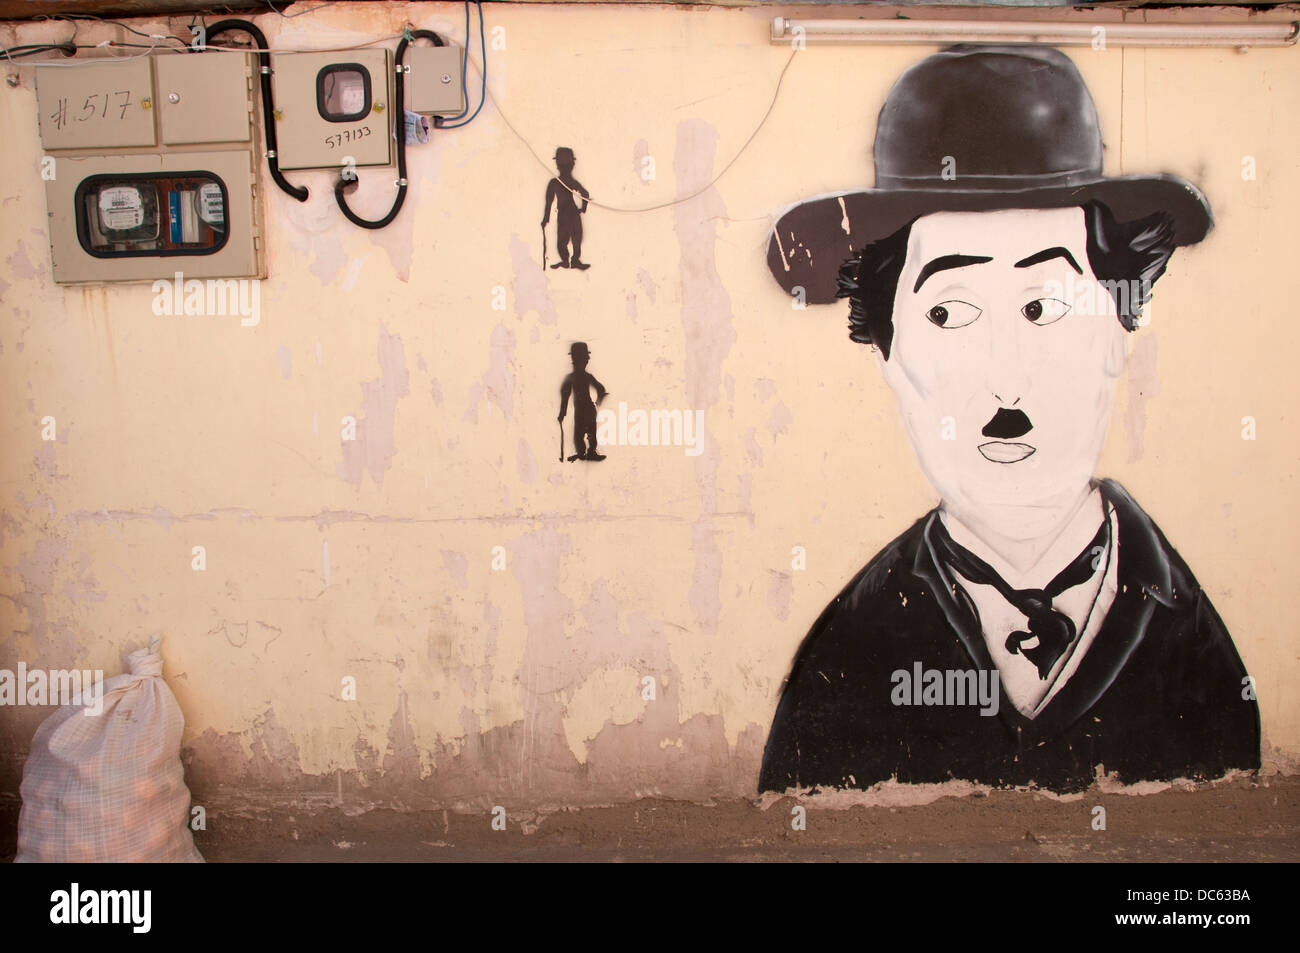 Bolivia June 2013. La Paz. Charlie Chaplin wall painting next to electric meter. - Stock Image